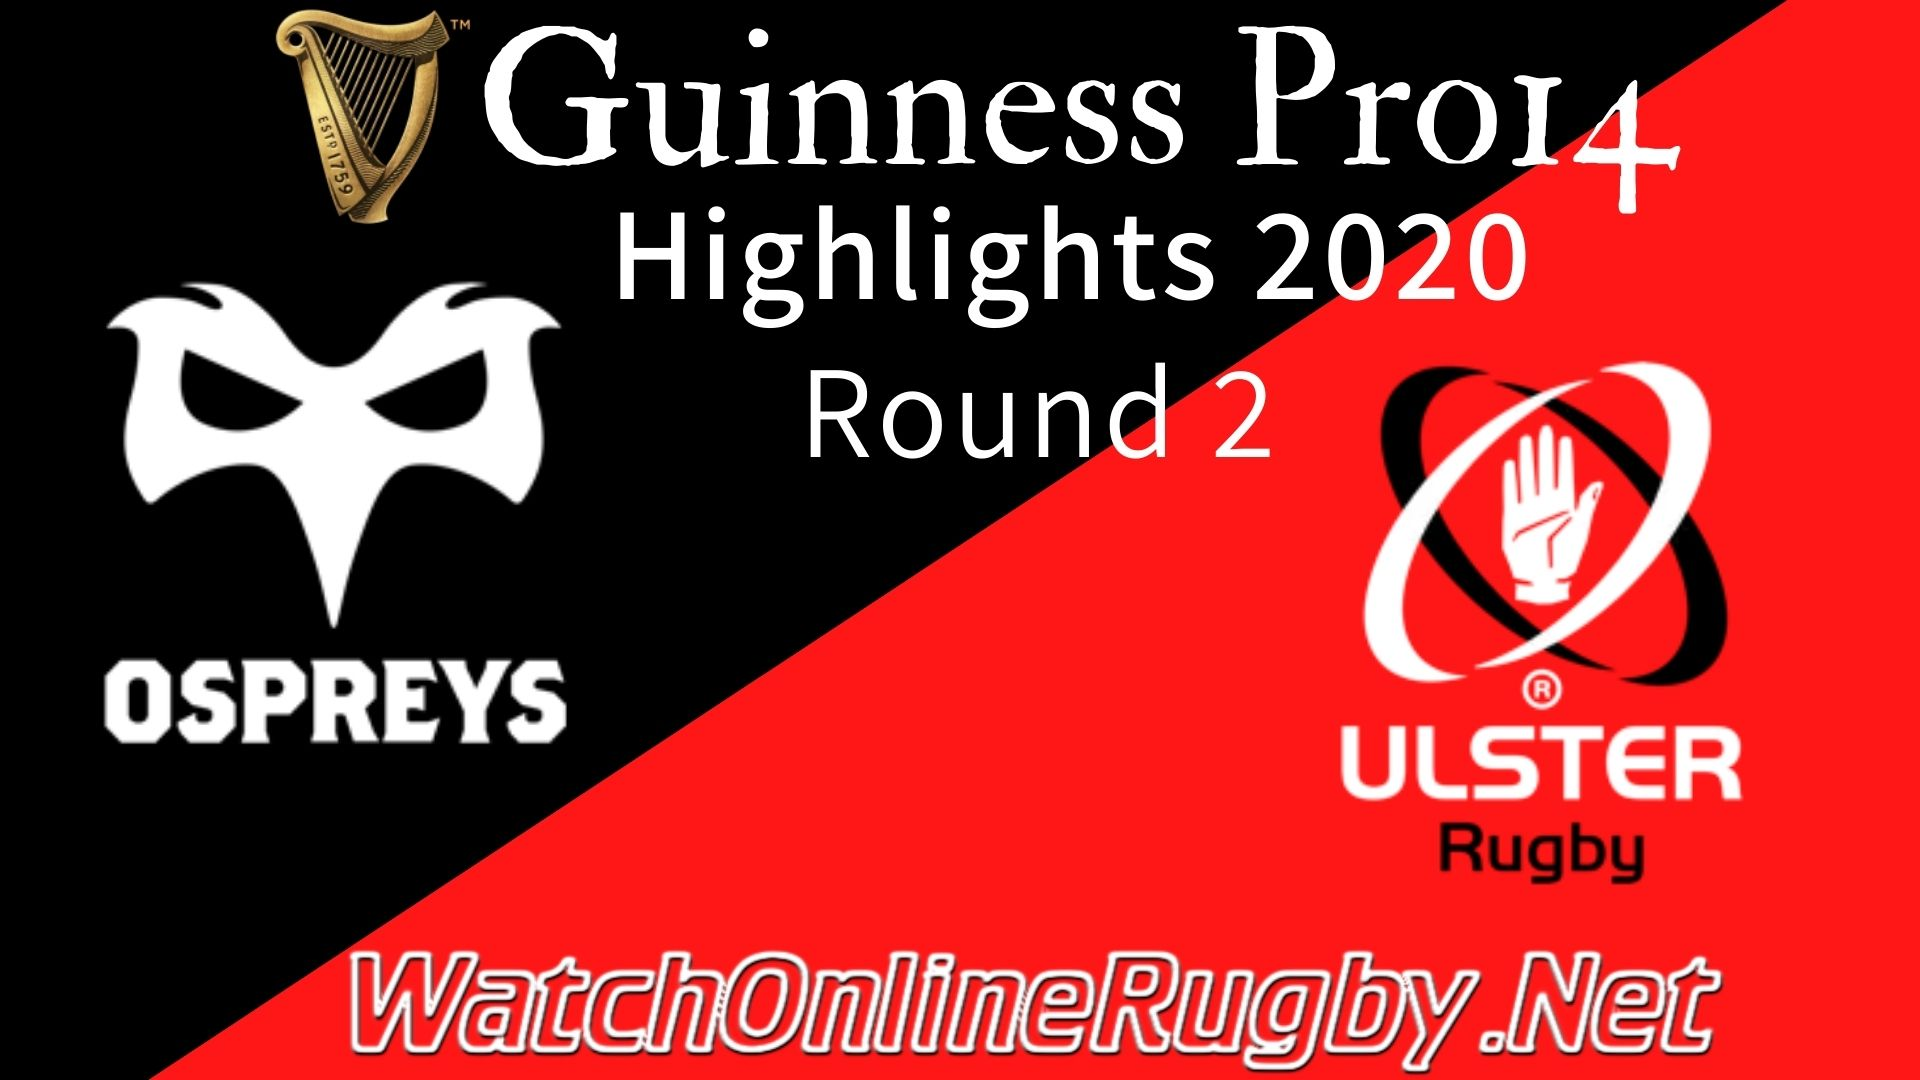 Ospreys vs Ulster RD 2 Highlights 2020